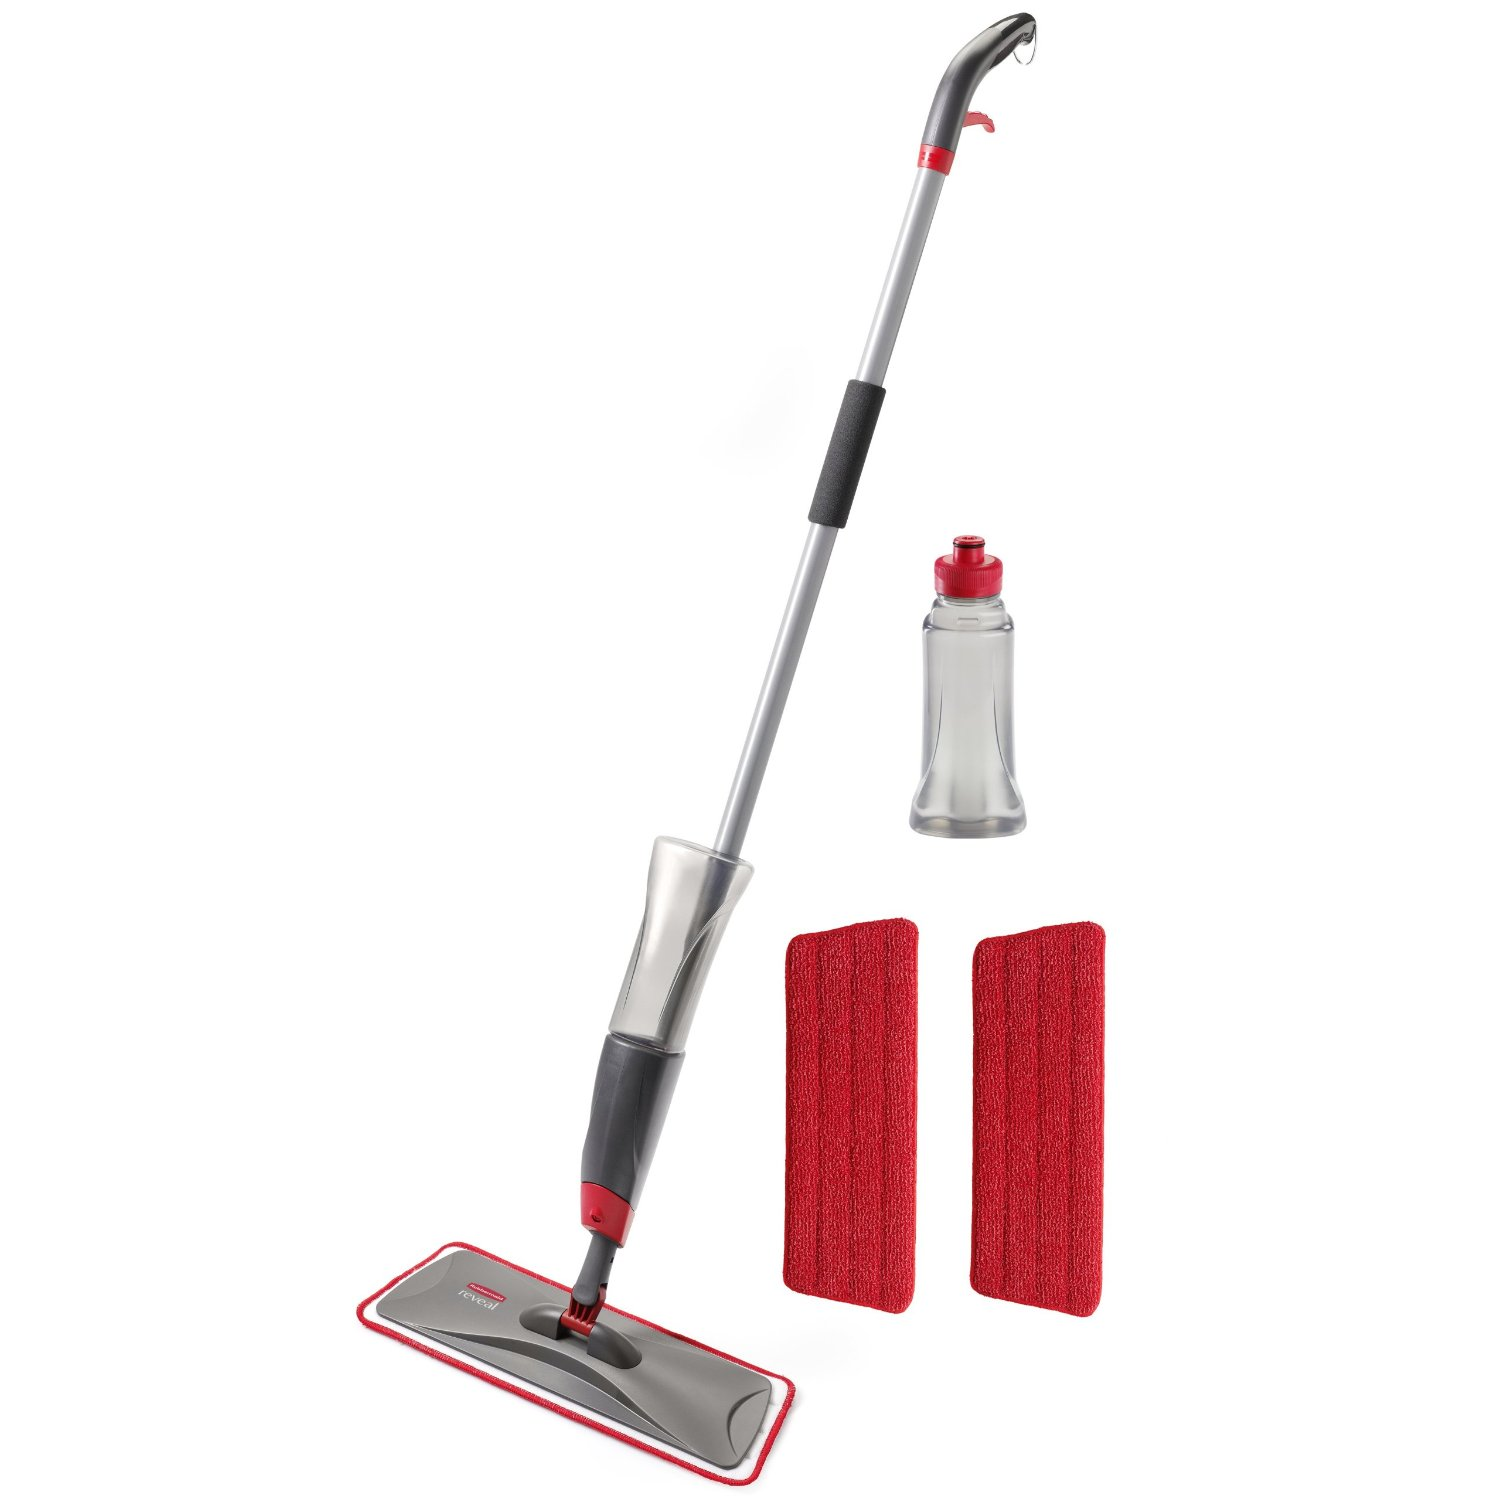 Friday Favorite Rubbermaid Reveal Spray Mop Kit